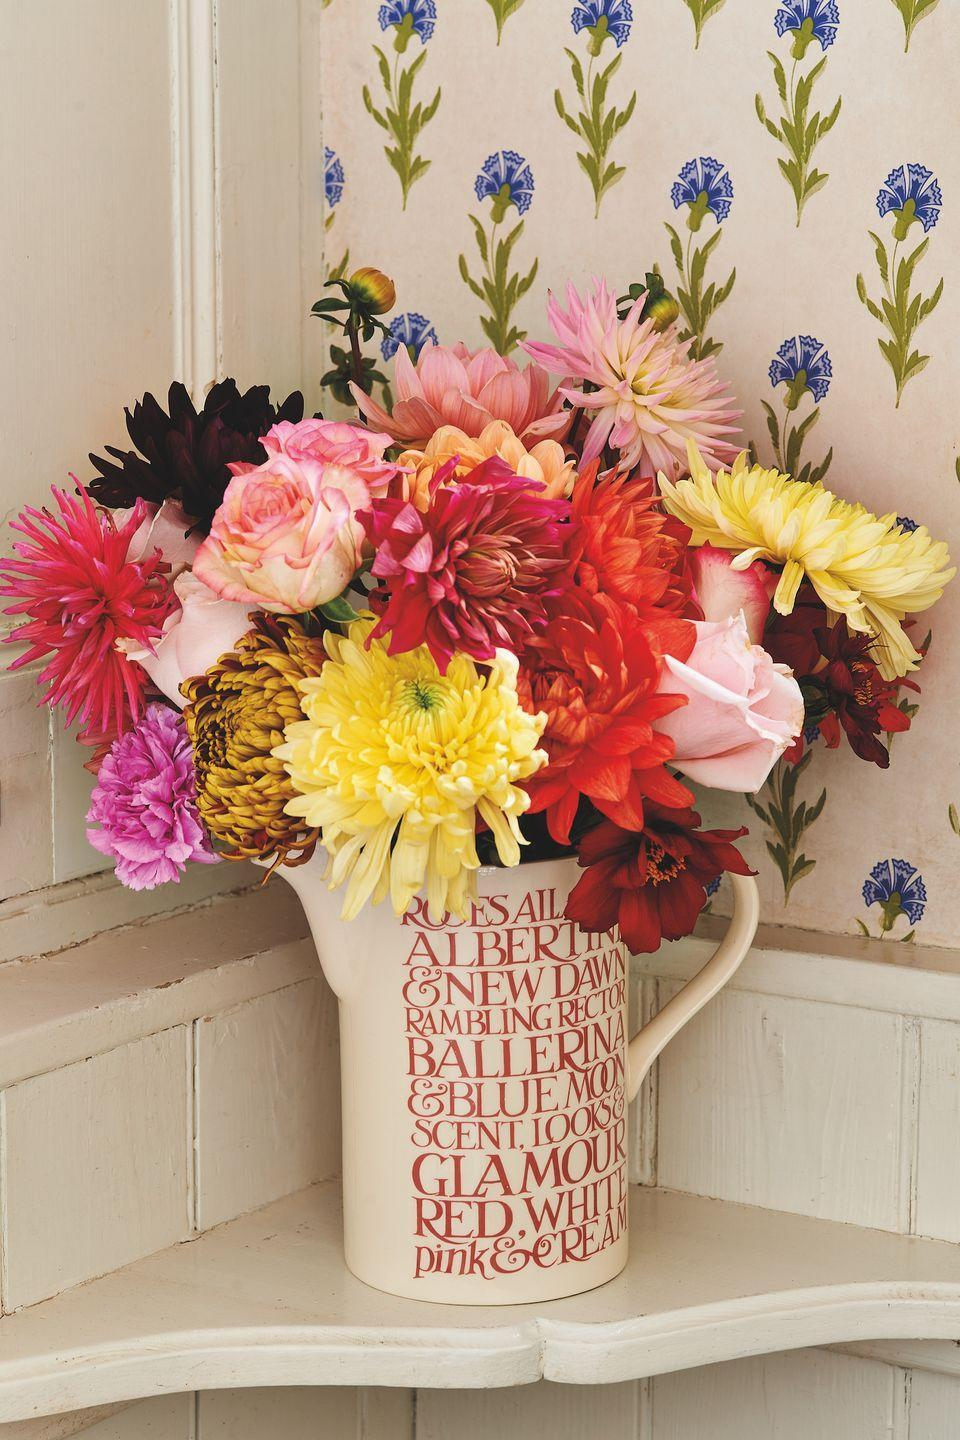 """<p>Show off your blooms with this breathtaking ceramic <a href=""""https://www.countryliving.com/uk/homes-interiors/gardens/g35147195/flower-trends-2021/"""" rel=""""nofollow noopener"""" target=""""_blank"""" data-ylk=""""slk:flower"""" class=""""link rapid-noclick-resp"""">flower</a> vase. As part of the 'Pink Toast' range, it celebrates the beauty of our favourite flowers. </p><p><a class=""""link rapid-noclick-resp"""" href=""""https://go.redirectingat.com?id=127X1599956&url=https%3A%2F%2Fwww.emmabridgewater.co.uk%2Fproducts%2Fpink-toast-roses-all-my-life-tall-straight-jug&sref=https%3A%2F%2Fwww.countryliving.com%2Fuk%2Fhomes-interiors%2Finteriors%2Fg35249240%2Femma-bridgewater-spring%2F"""" rel=""""nofollow noopener"""" target=""""_blank"""" data-ylk=""""slk:BUY NOW, £65.95"""">BUY NOW, £65.95</a> </p>"""